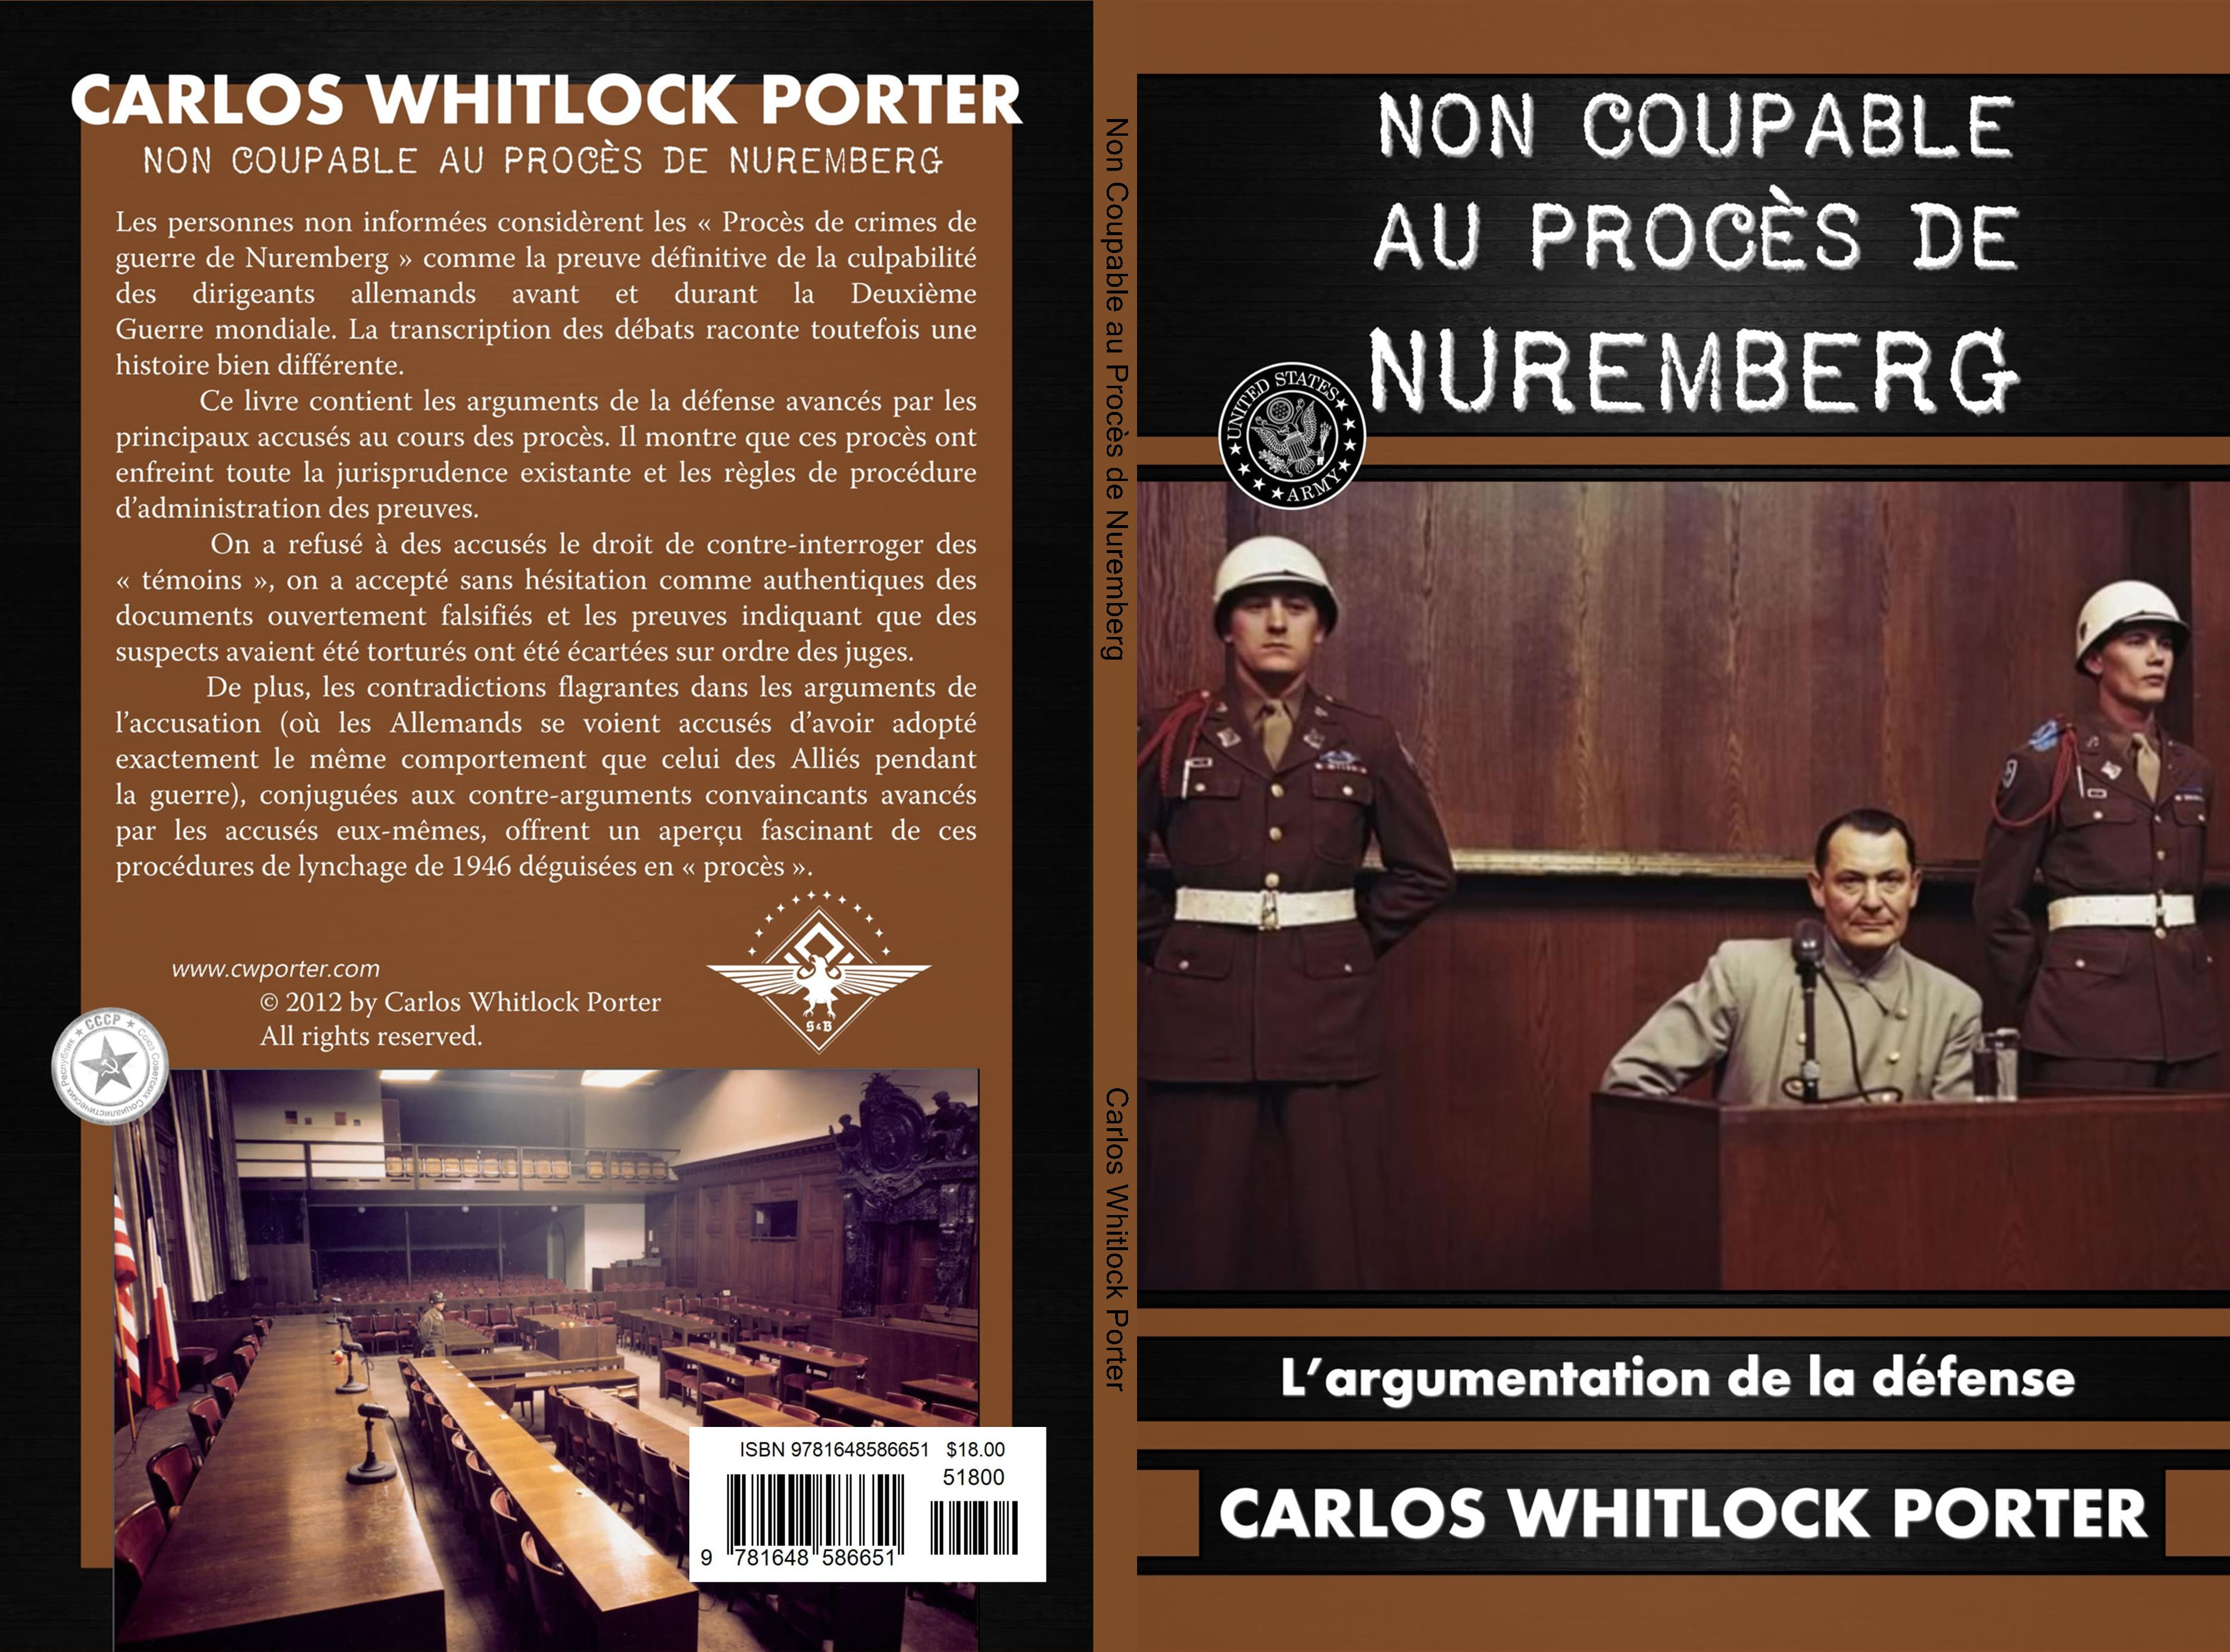 Non coupable au procès de Nuremberg cover image